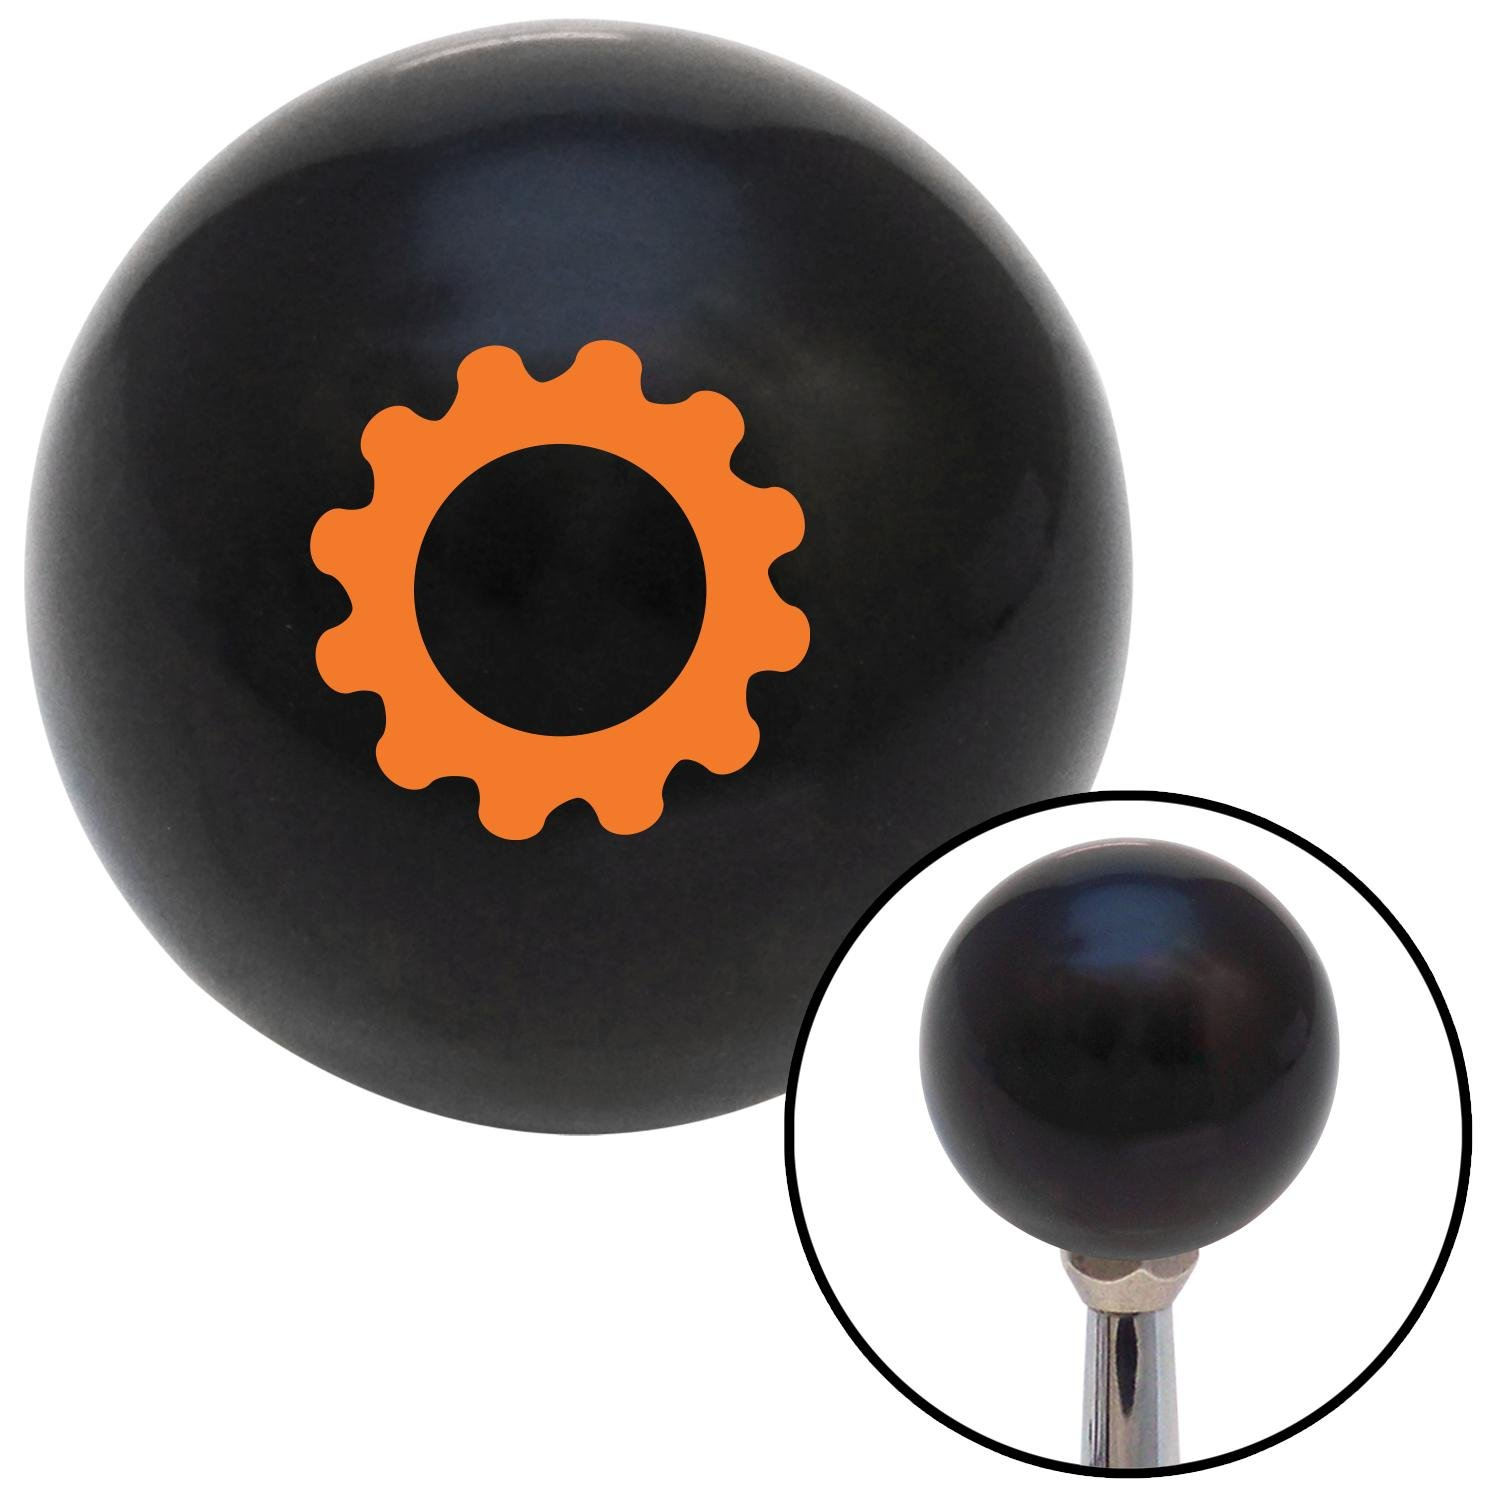 American Shifter 103785 Black Shift Knob with M16 x 1.5 Insert Orange Solid Gear